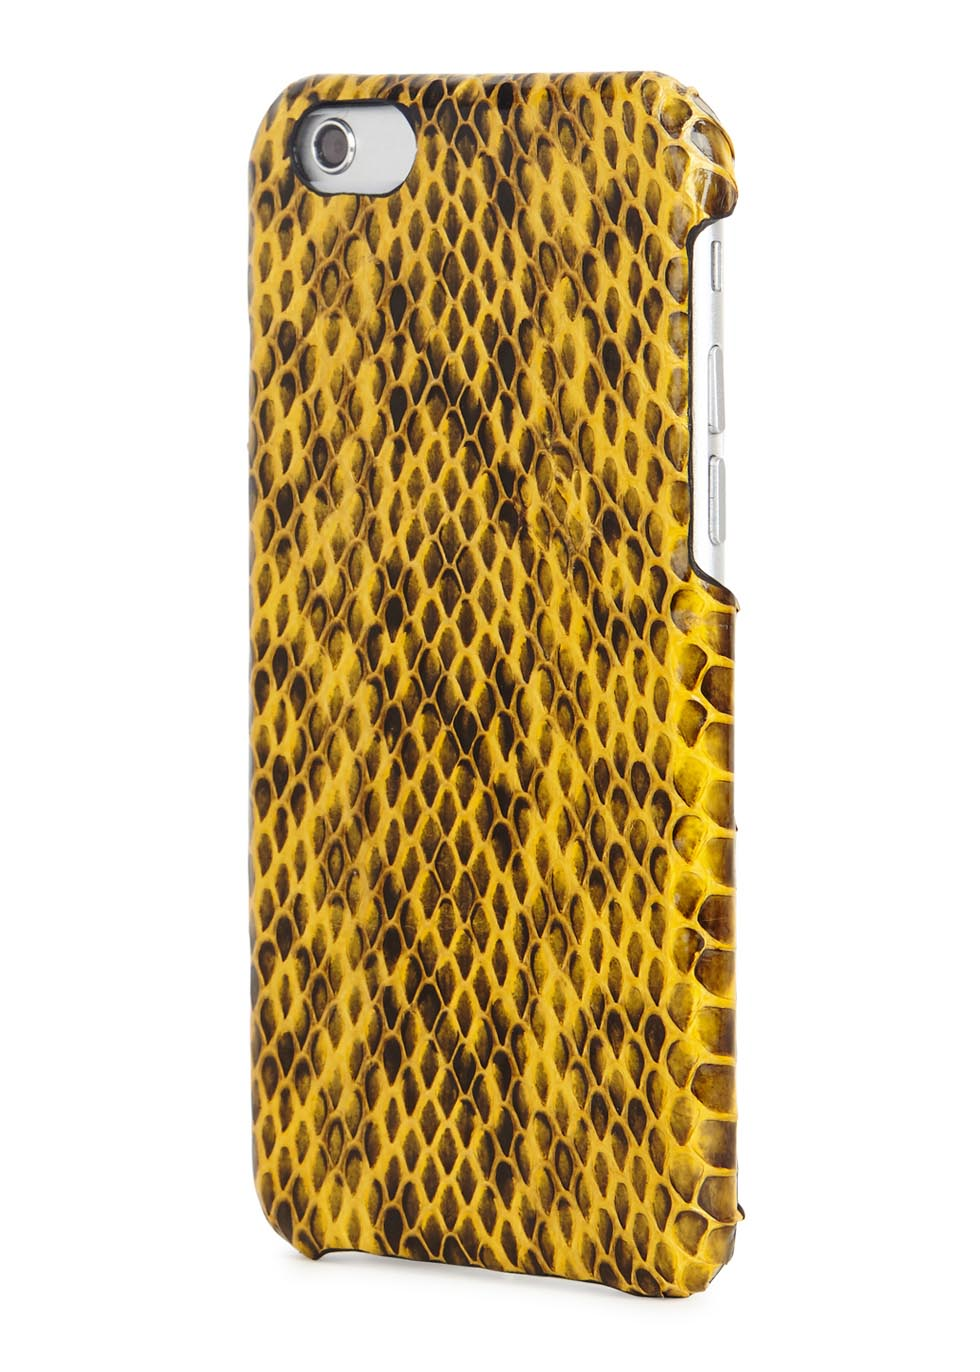 Yellow watersnake iPhone 6/6S case - The Case Factory